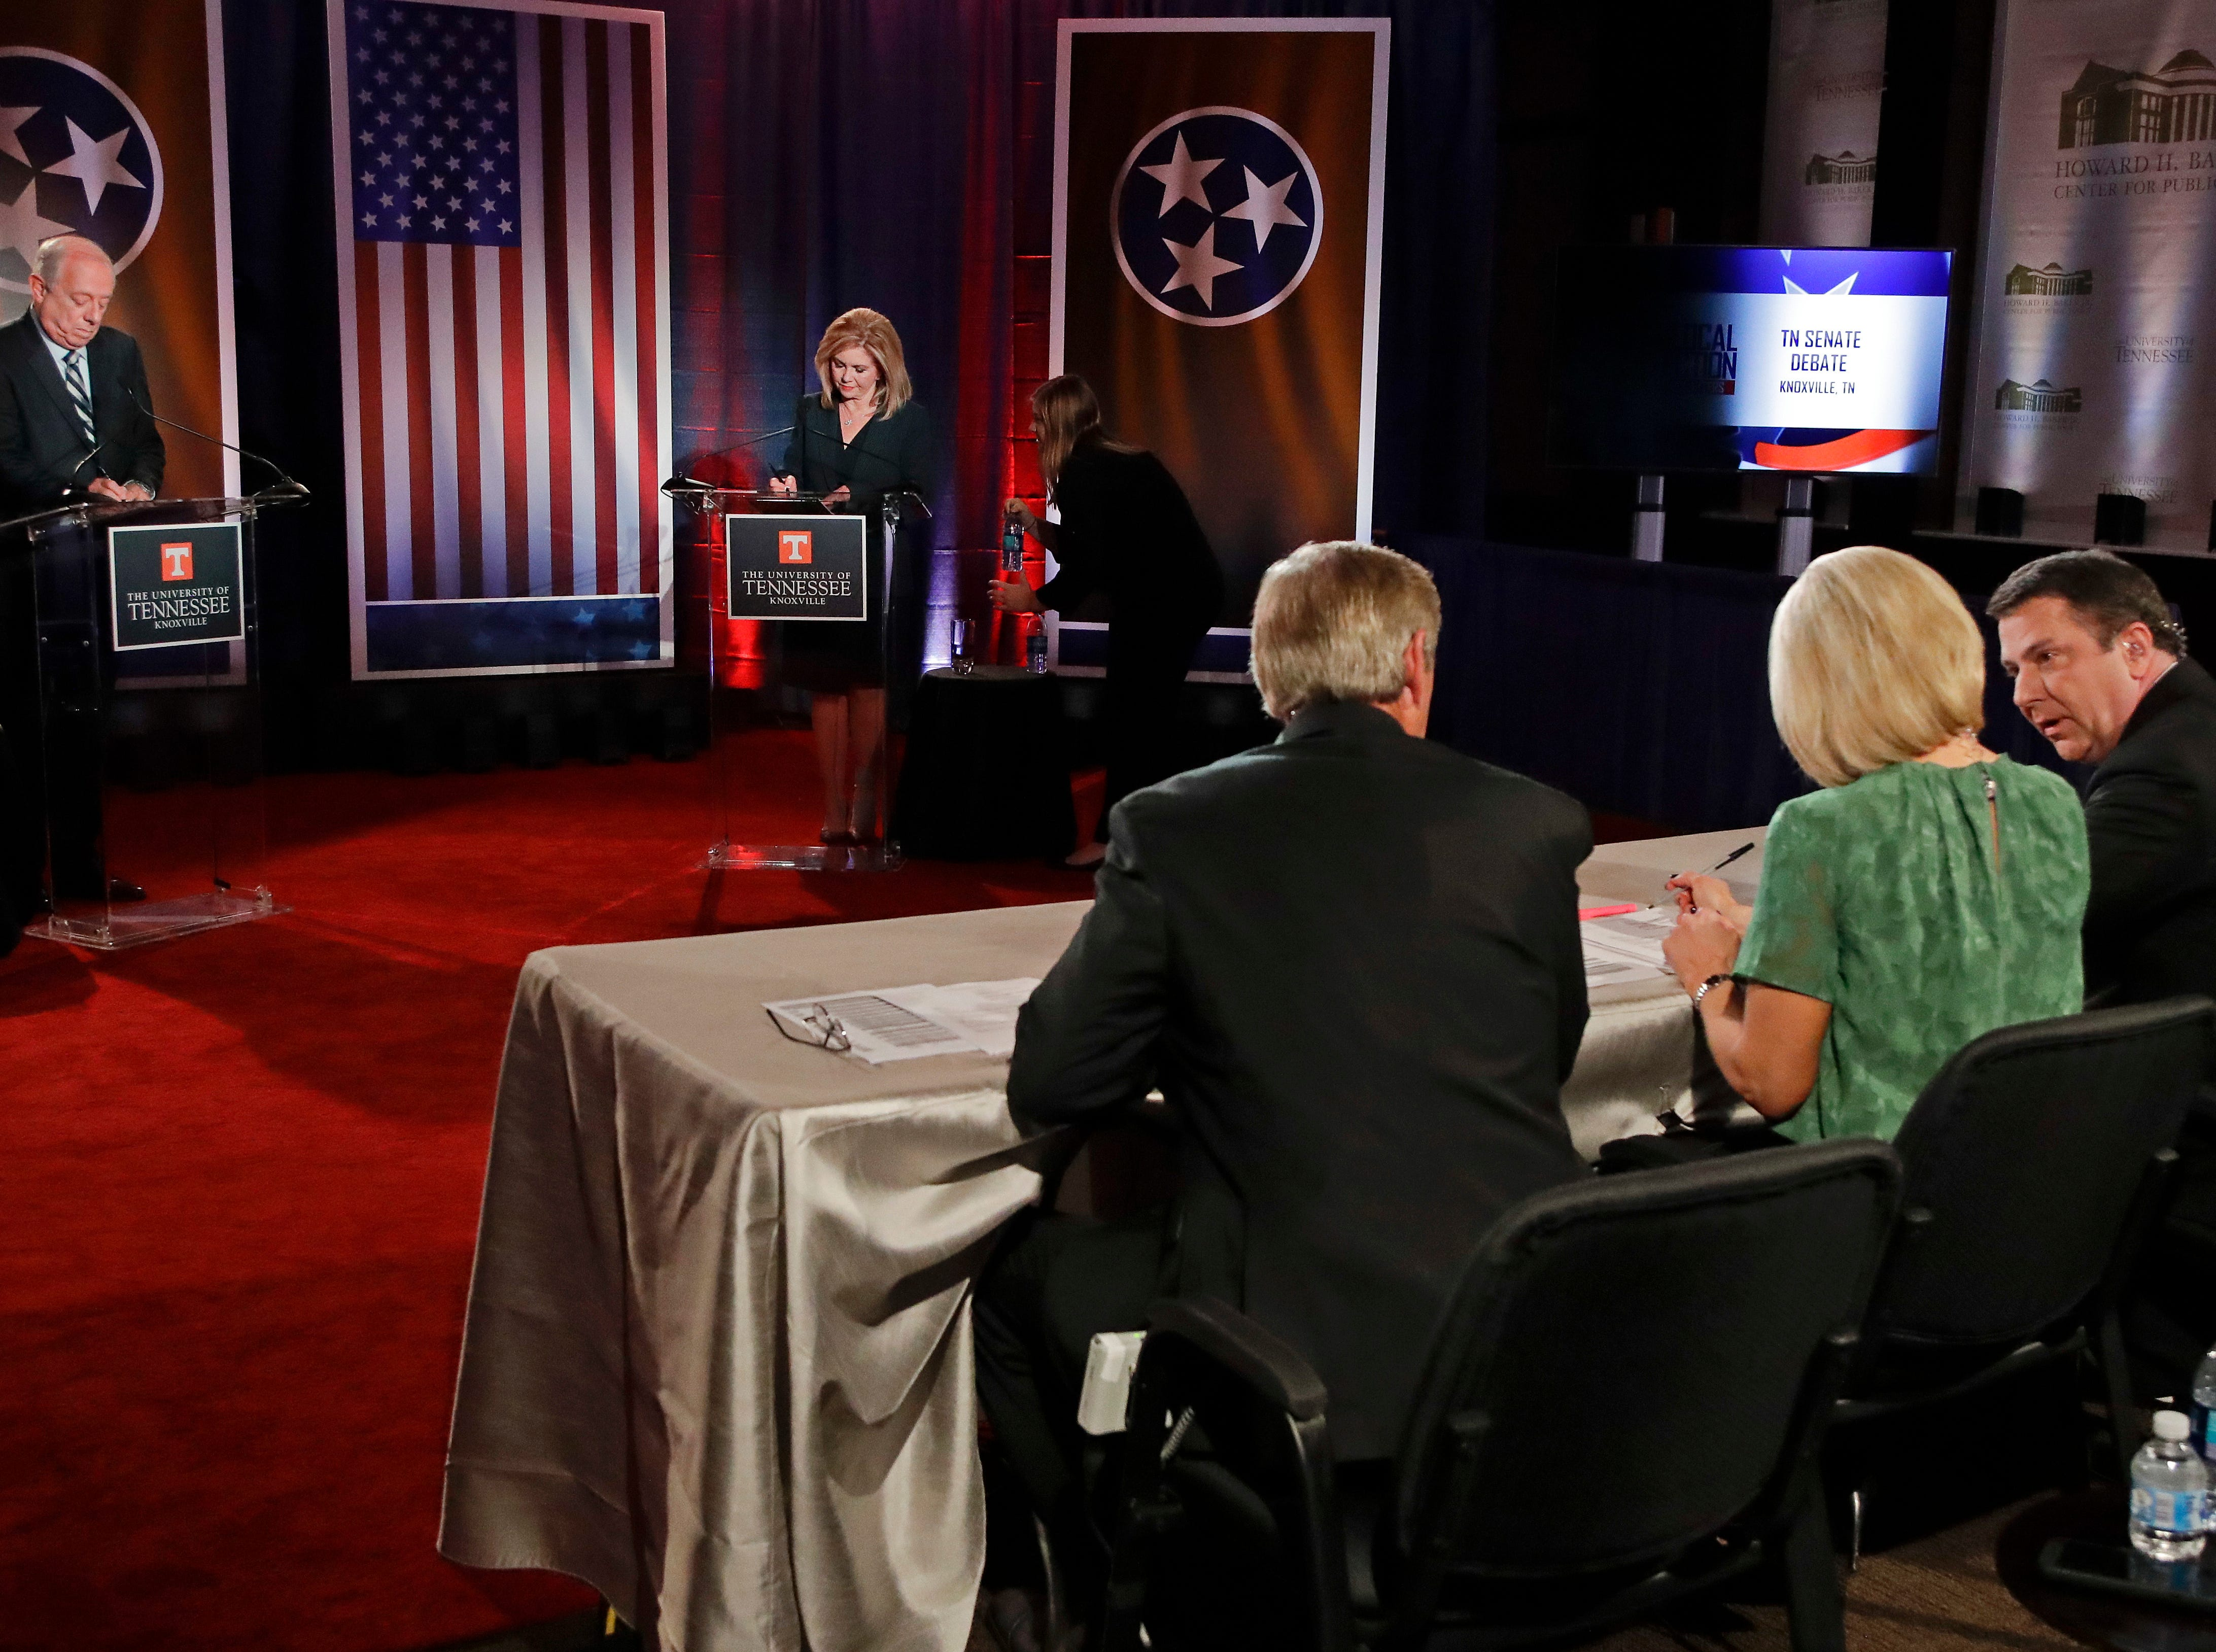 Democratic candidate and former Gov. Phil Bredesen and Republican U.S. Rep. Marsha Blackburn wait with the moderators for the start of the Tennessee U.S. Senate debate at the University of Tennessee, Wednesday, Oct. 10, 2018, in in Knoxville, Tenn.